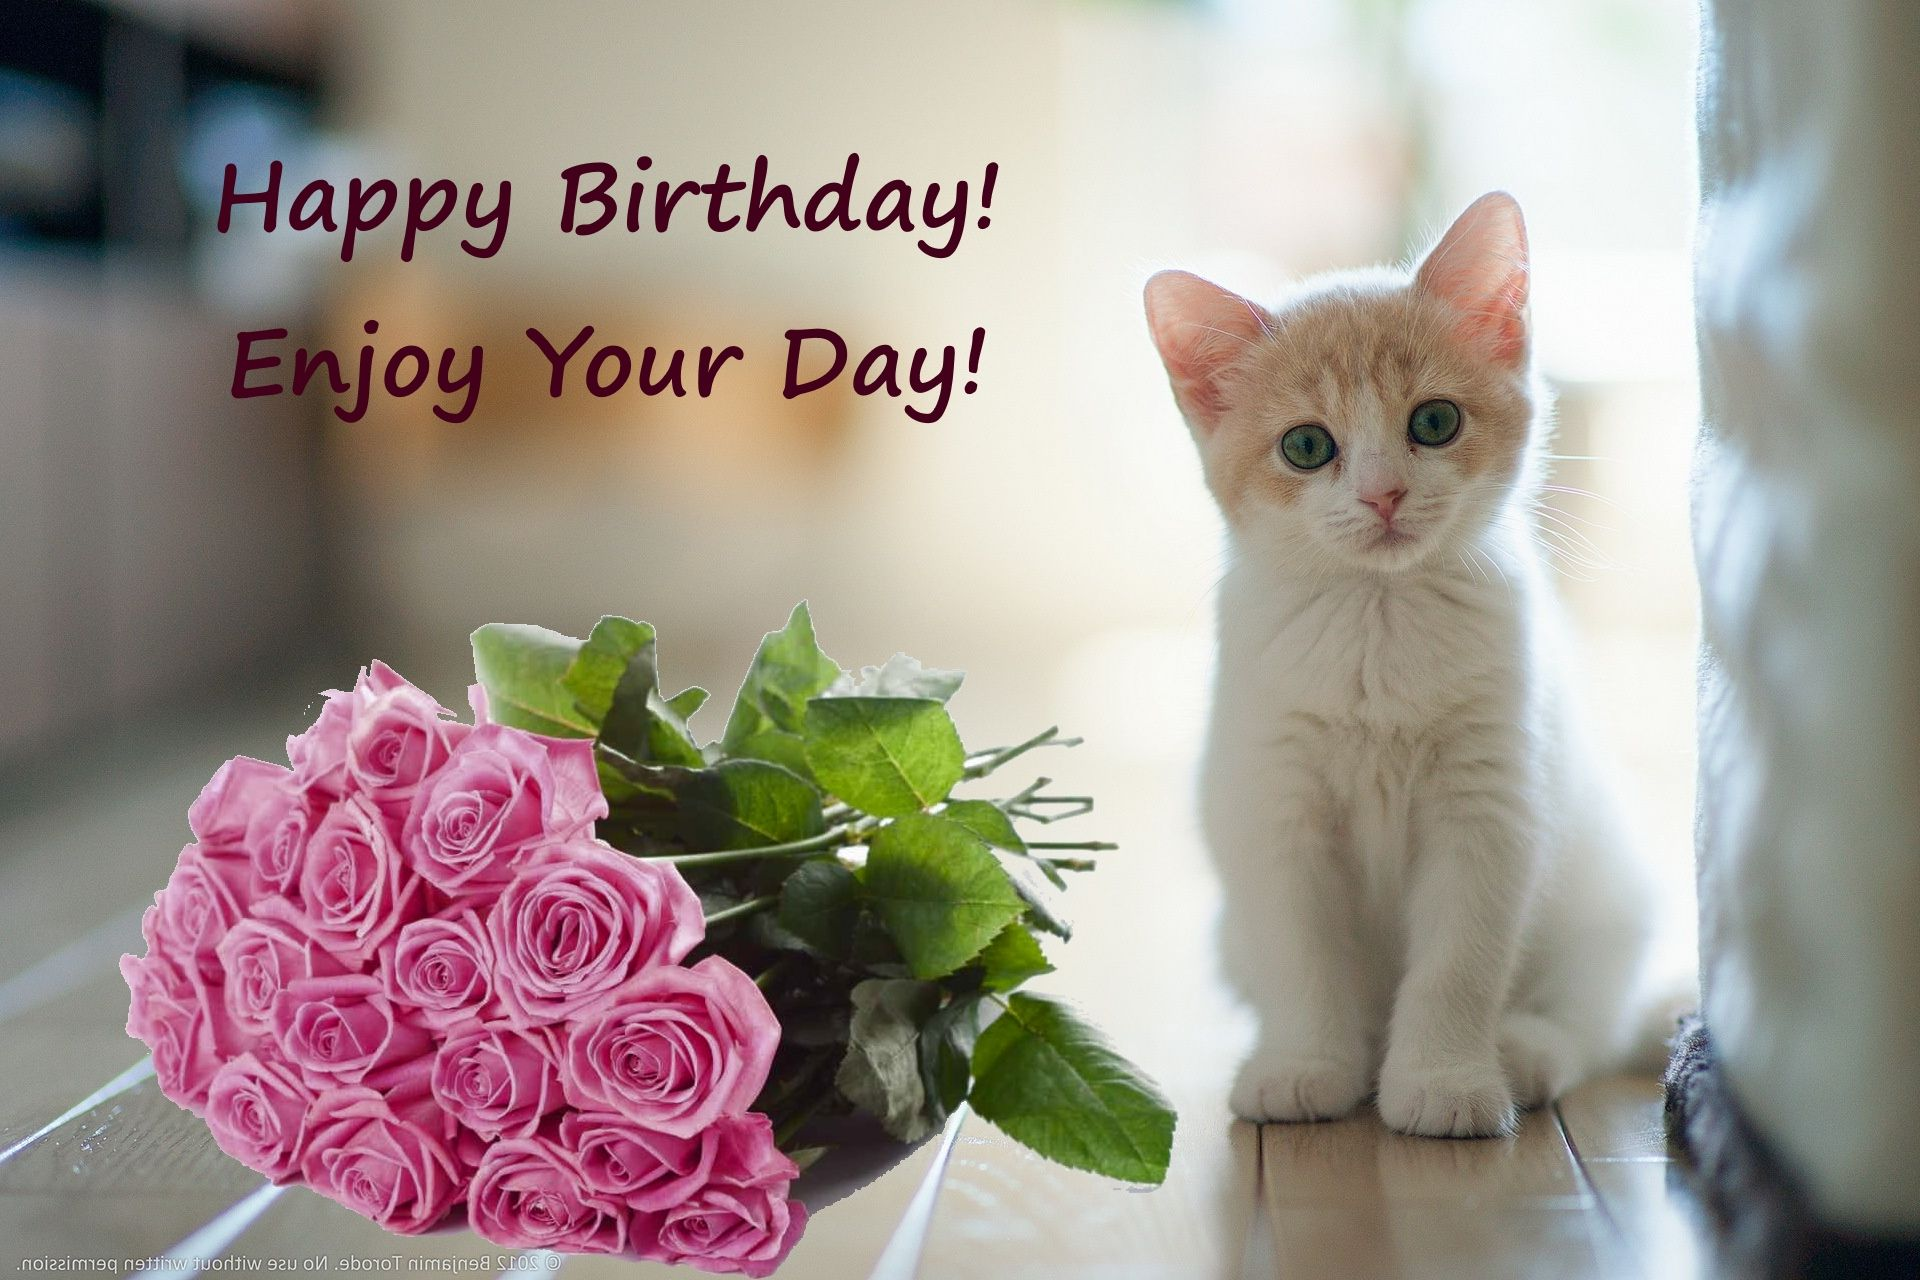 We Hope You Enjoy This Happy Birthday With Kitten And